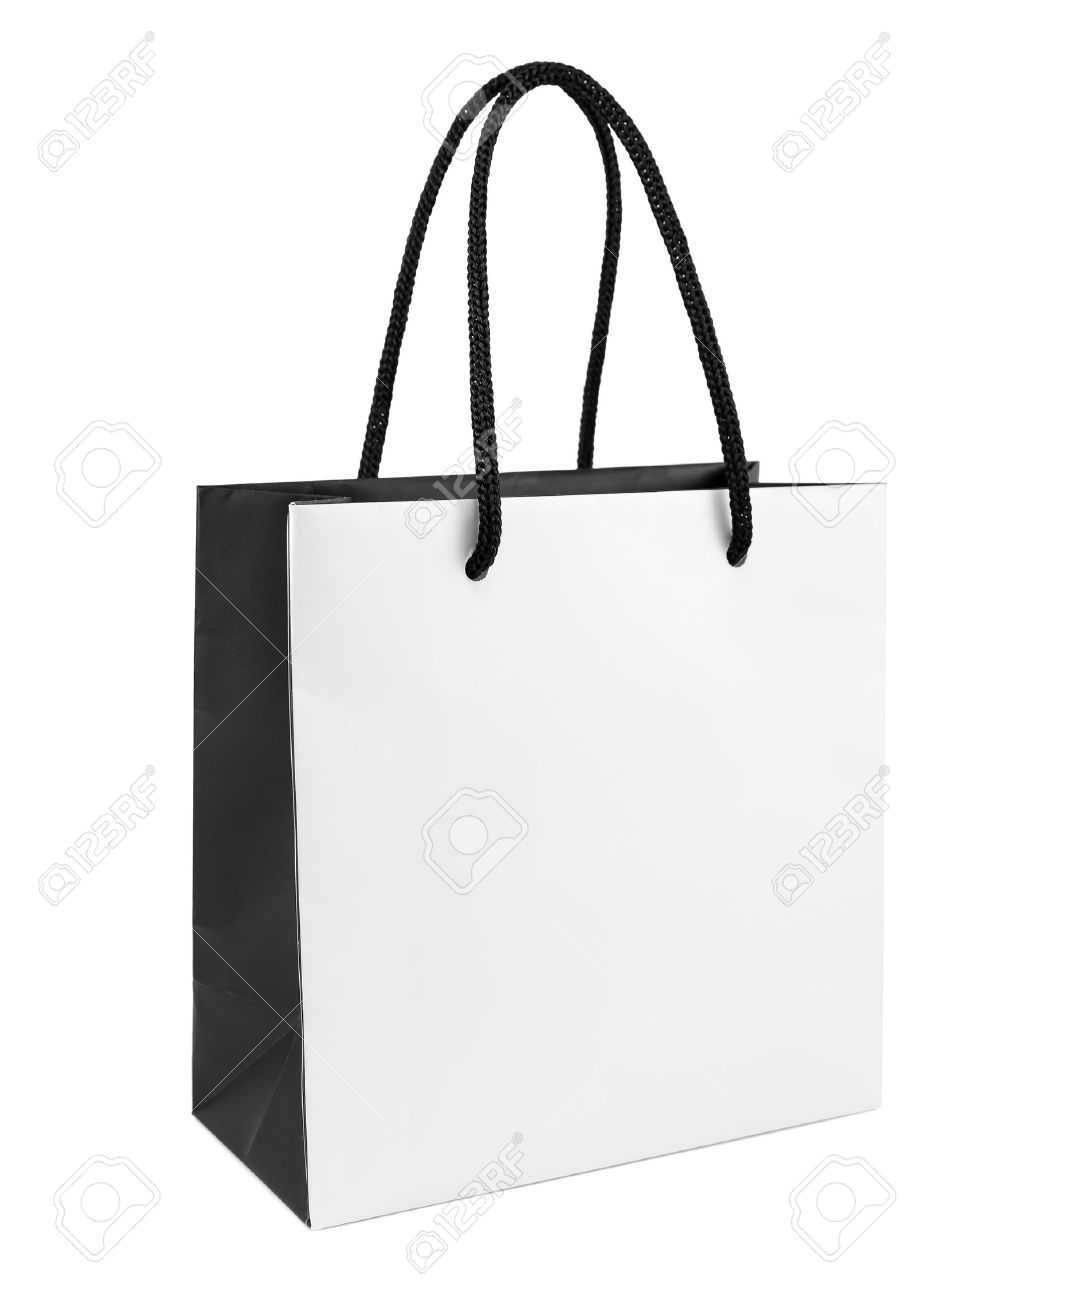 White And Black Paper Shopping Bag Isolated Stock Photo, Picture ...